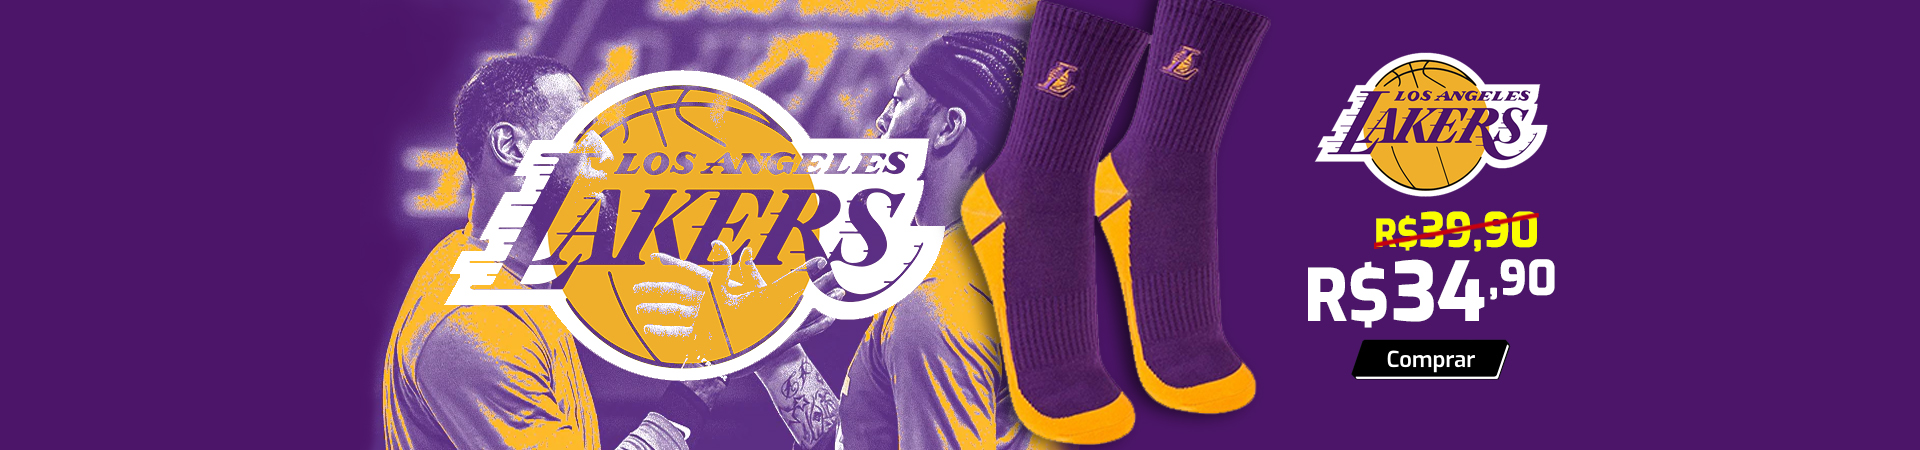 Meias Lakers